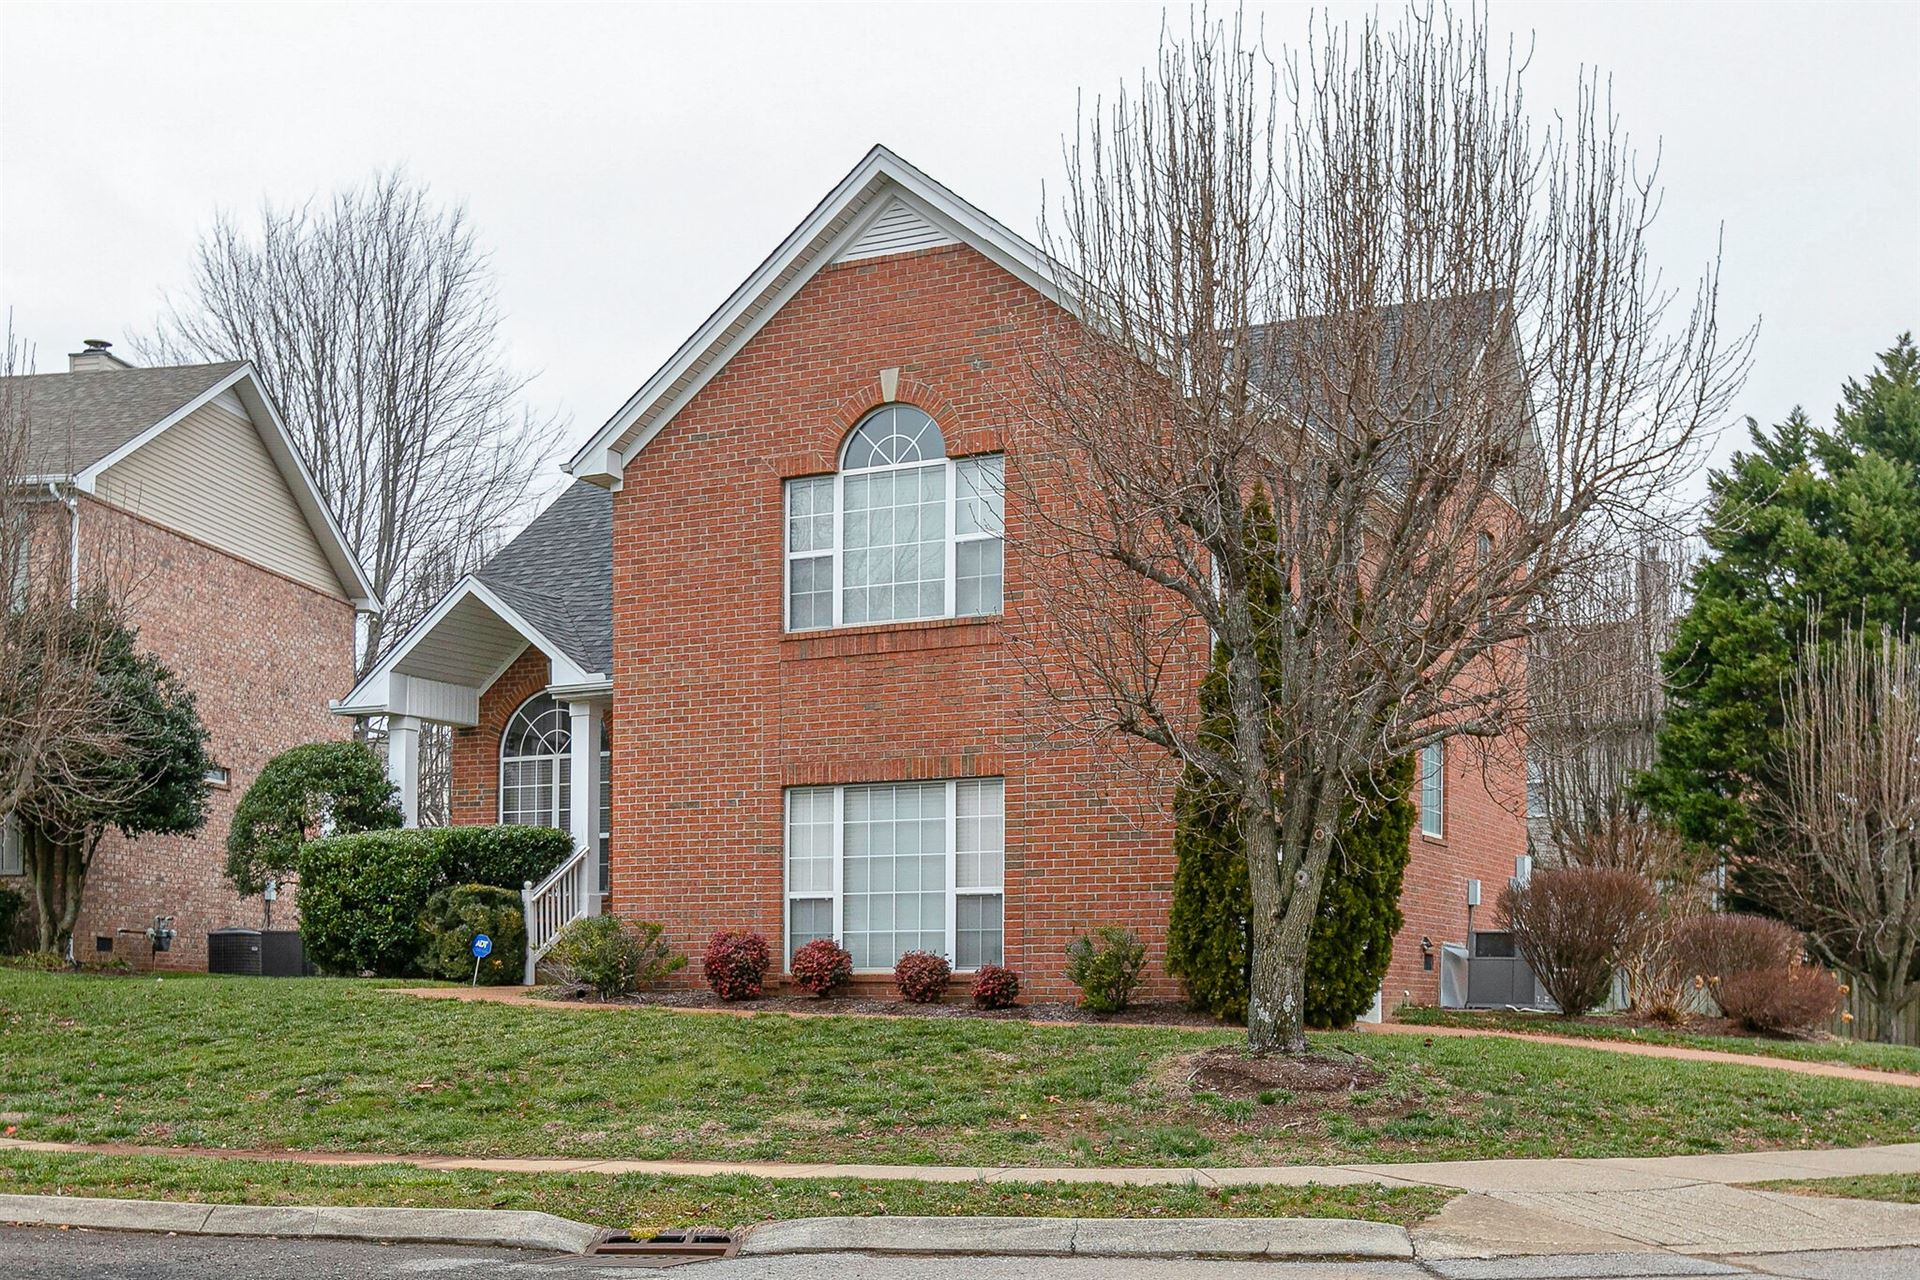 Photo of 600 Wildflower Ct, Franklin, TN 37064 (MLS # 2220108)